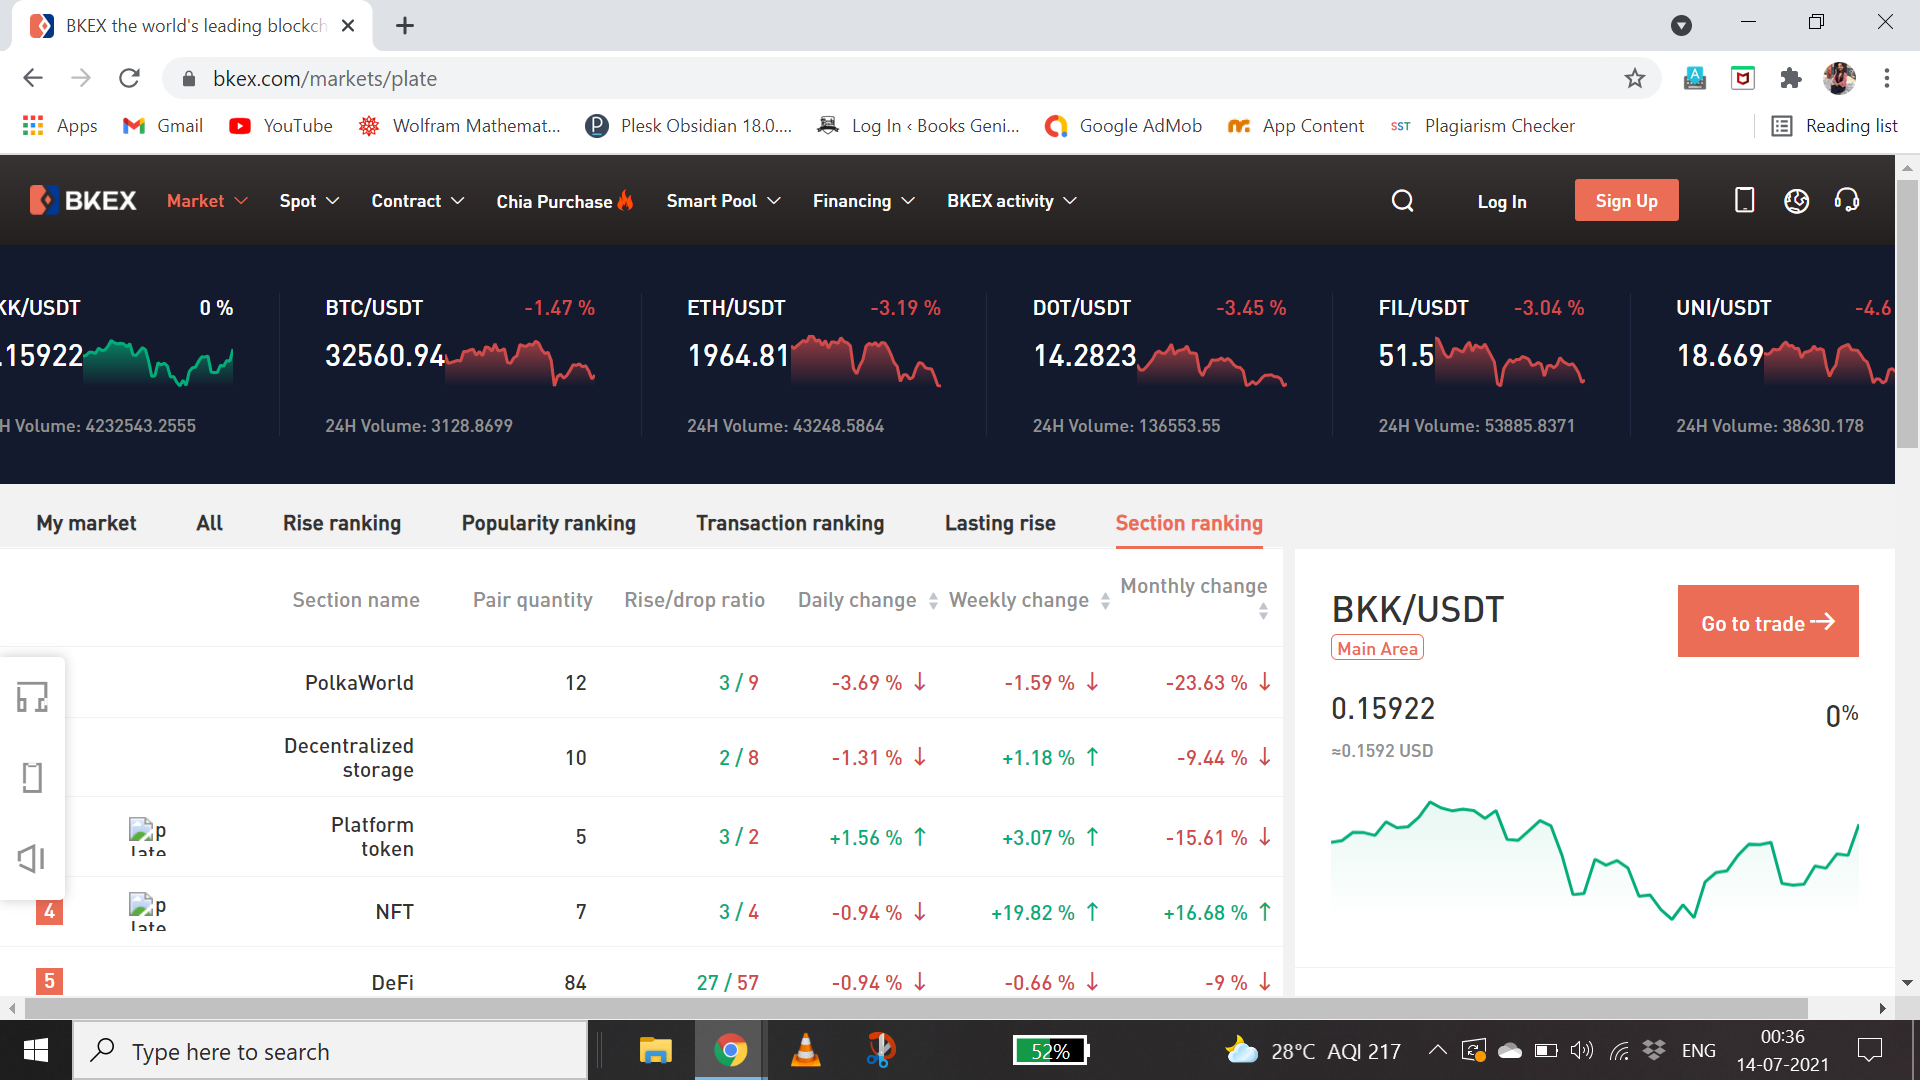 Bkex trading view